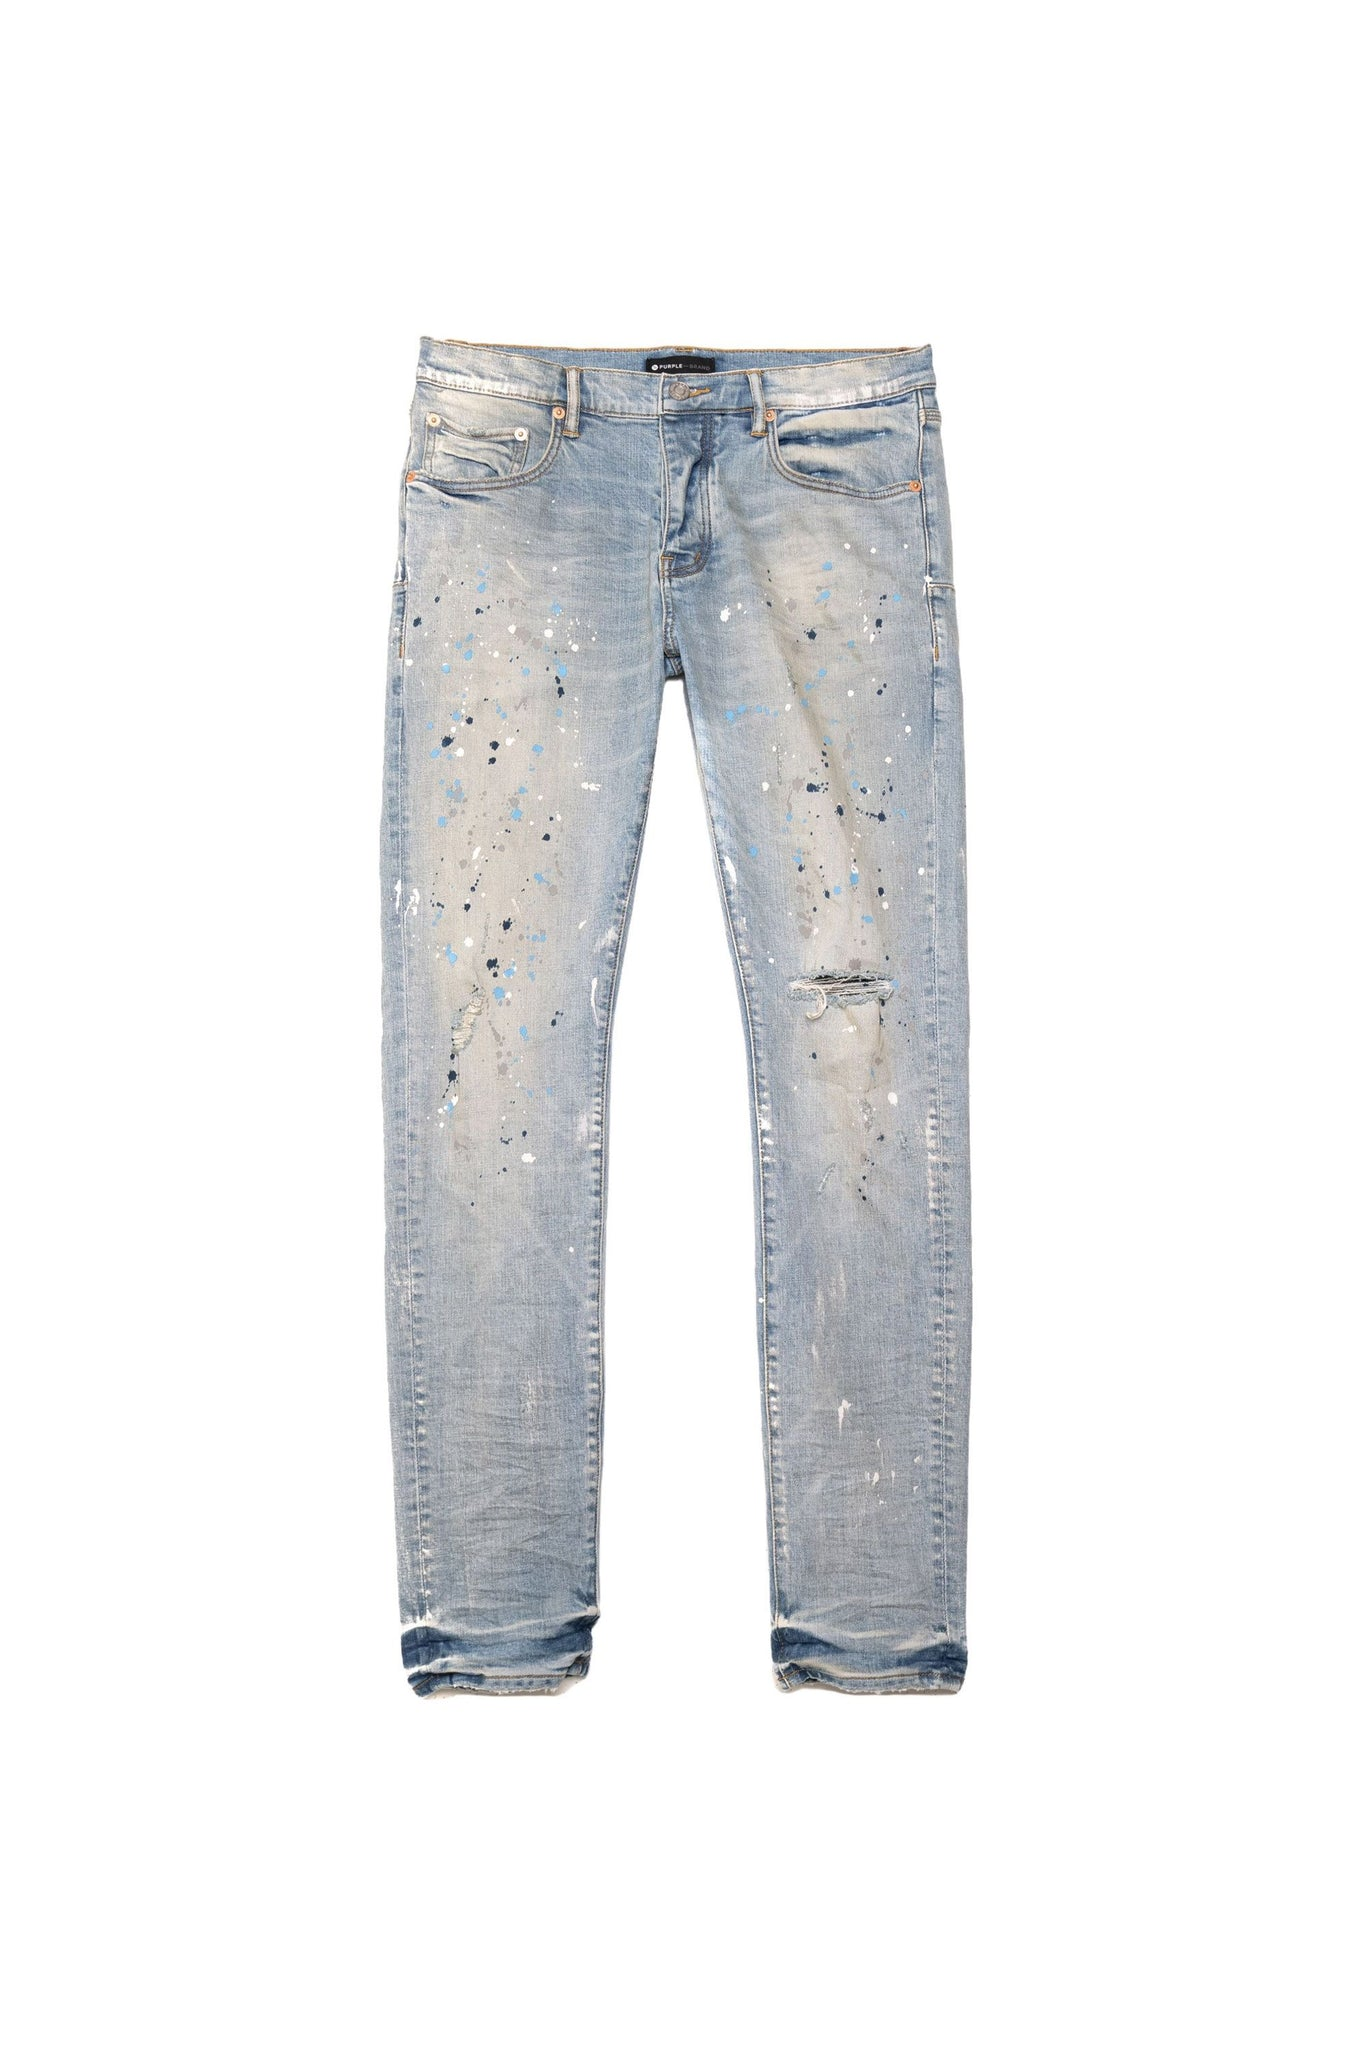 P001 LOW RISE WITH SLIM LEG - Light Indigo Painter Jean